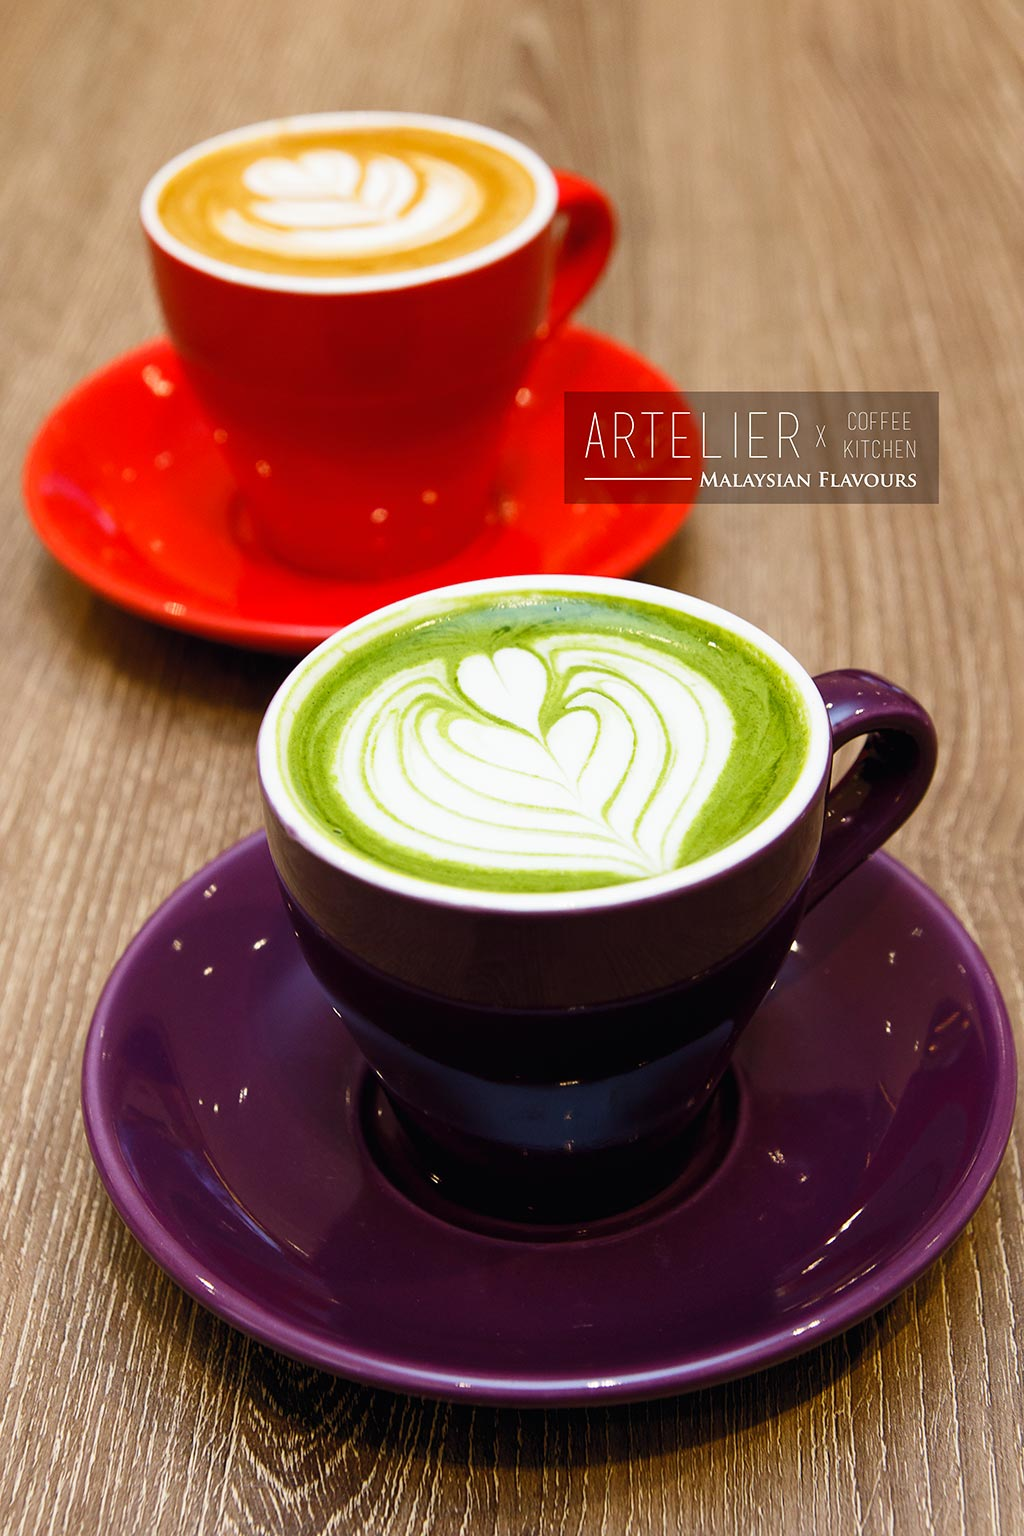 Artelier Coffee X Kitchen Pavilion KL